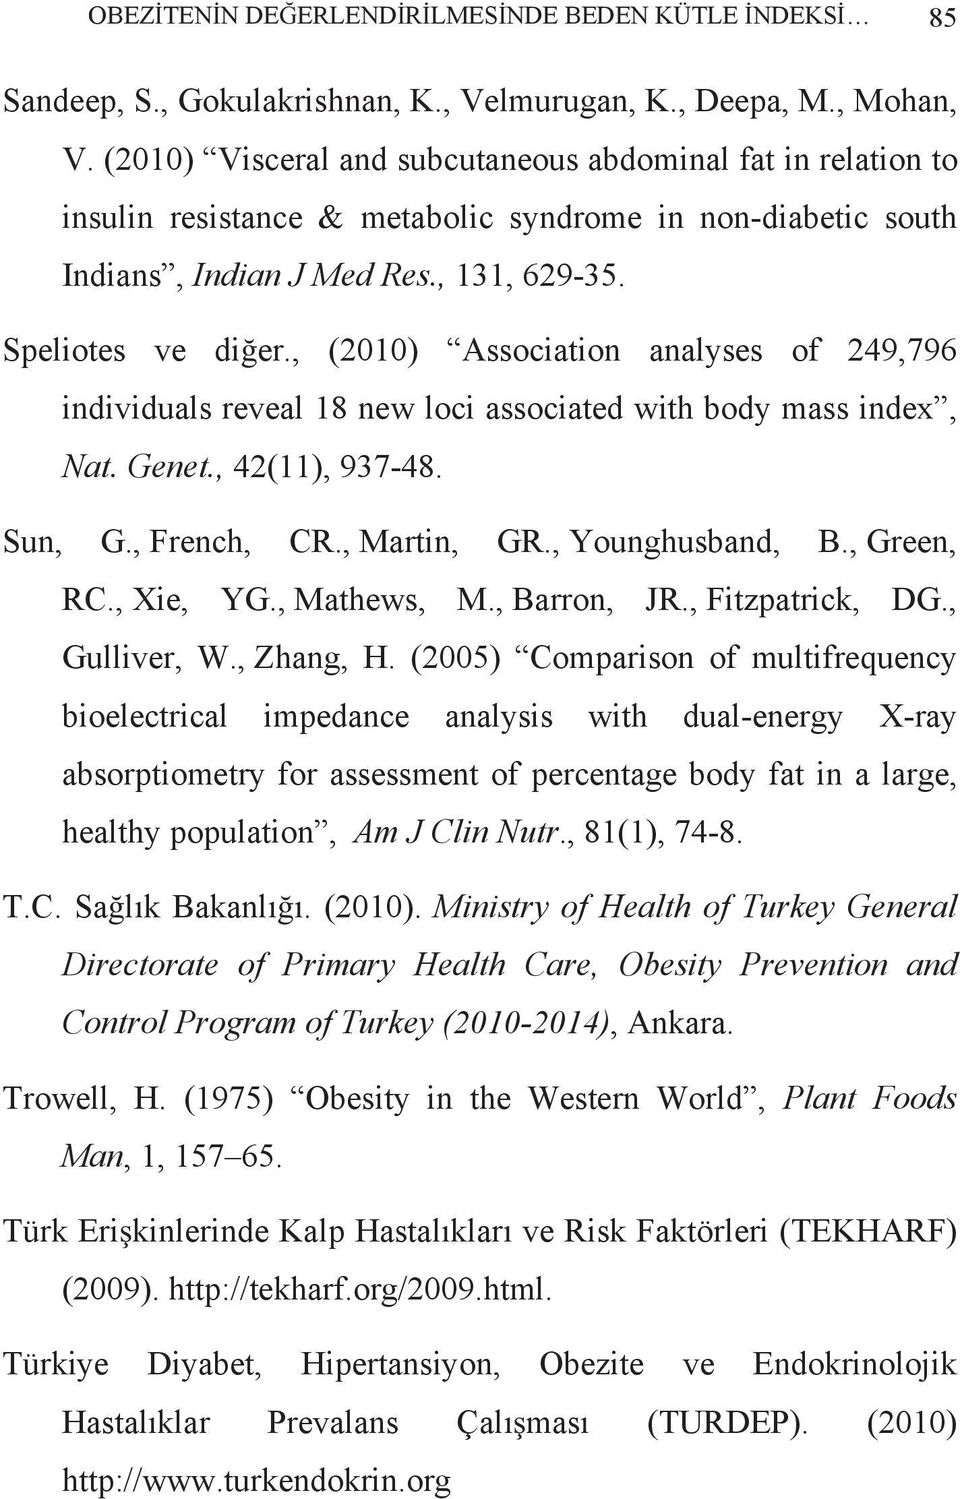 , (2010) Association analyses of 249,796 individuals reveal 18 new loci associated with body mass index, Nat. Genet., 42(11), 937-48. Sun, G., French, CR., Martin, GR., Younghusband, B., Green, RC.